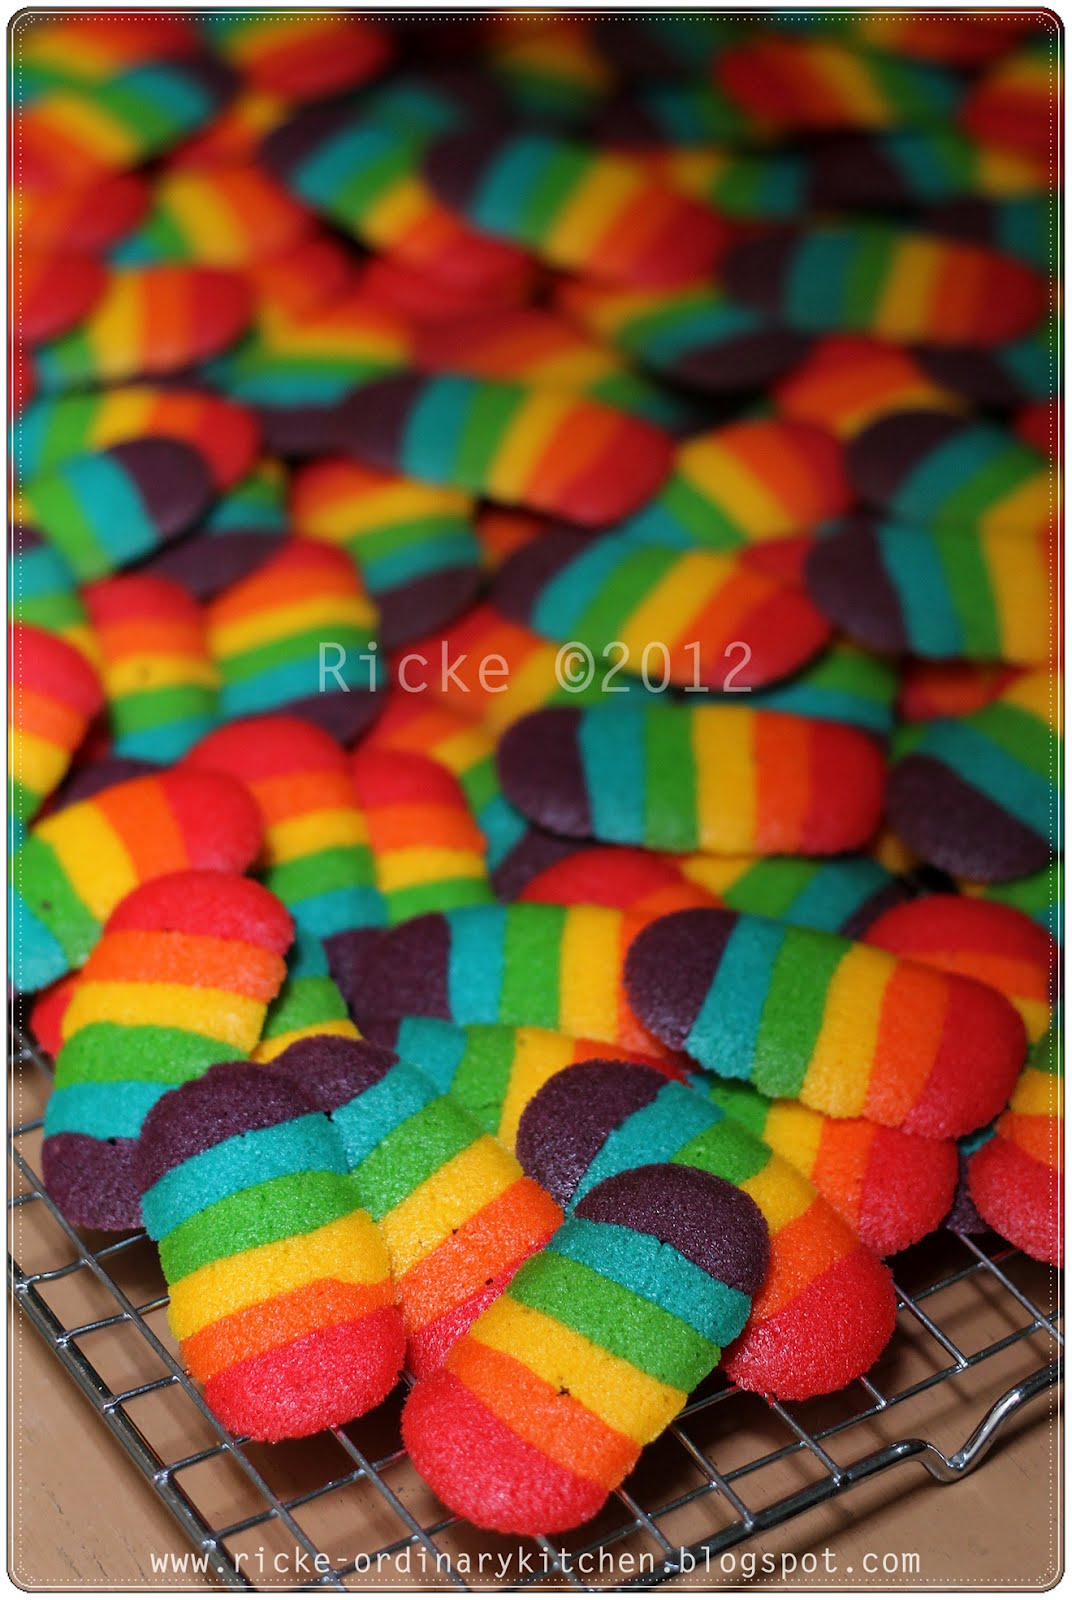 Kue Lidah Kucing Rainbow : lidah, kucing, rainbow, RAINBOW, CAT'S, TONGUE, COOKIES, A.k.a, LIDAH, KUCING, PELANGI, Aneka, Resep, Masak